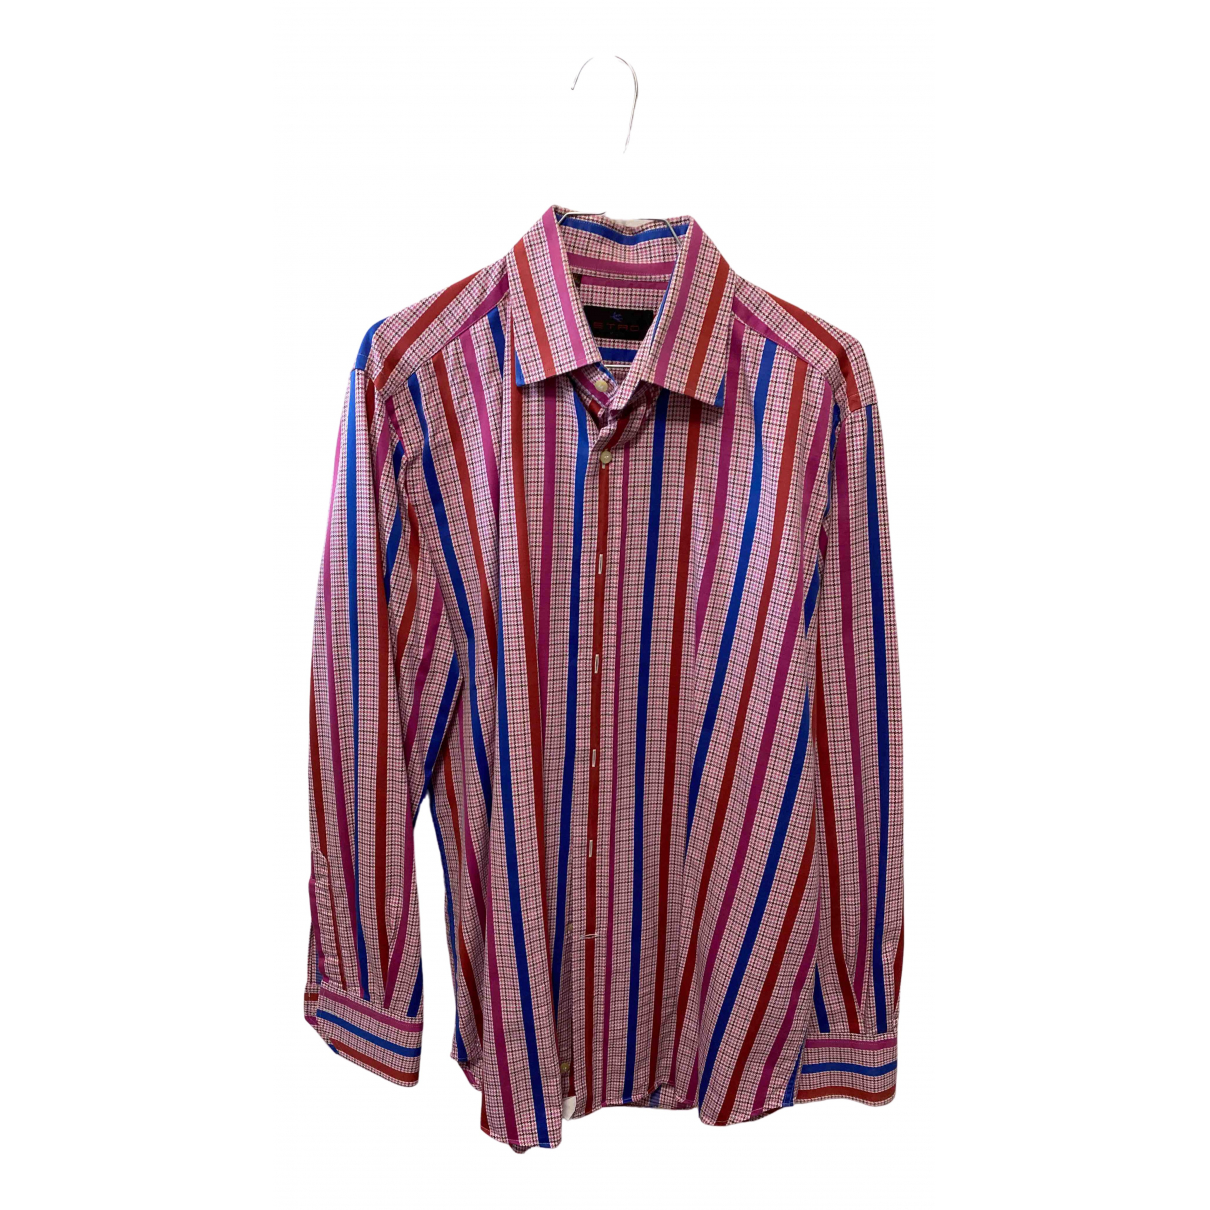 Etro \N Multicolour Cotton Shirts for Men 40 EU (tour de cou / collar)